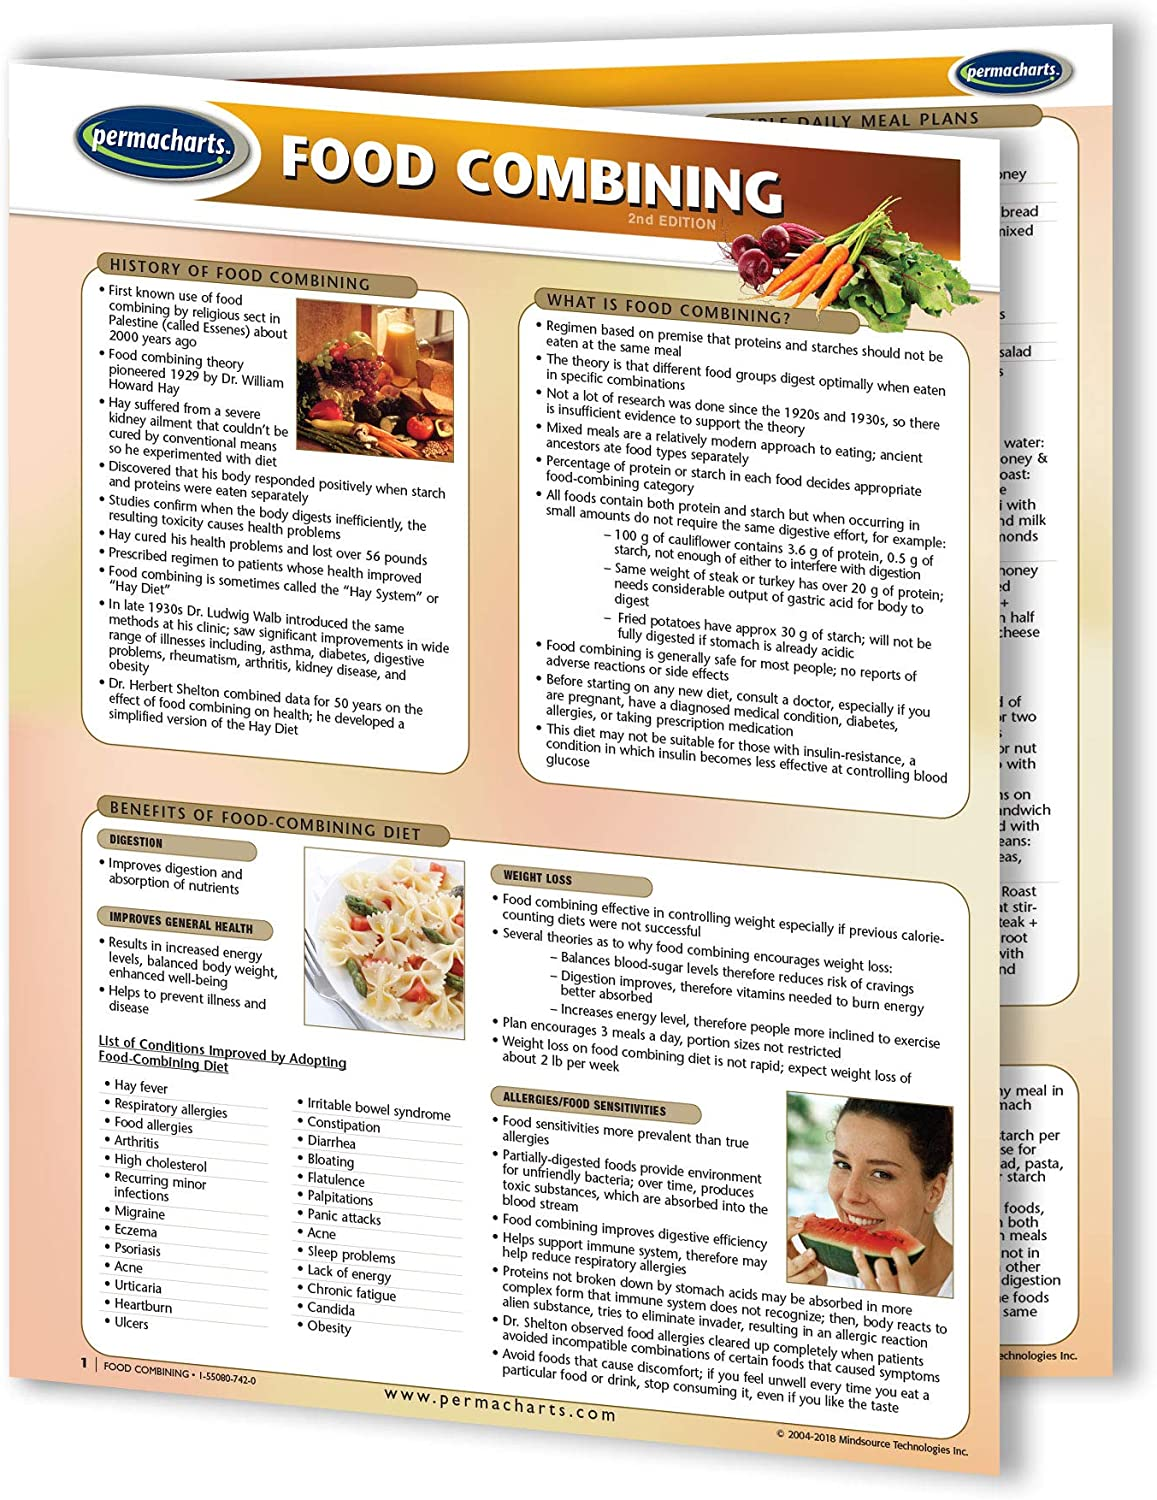 Food Combining Guide - Cooking Quick Reference Guide by Permacharts